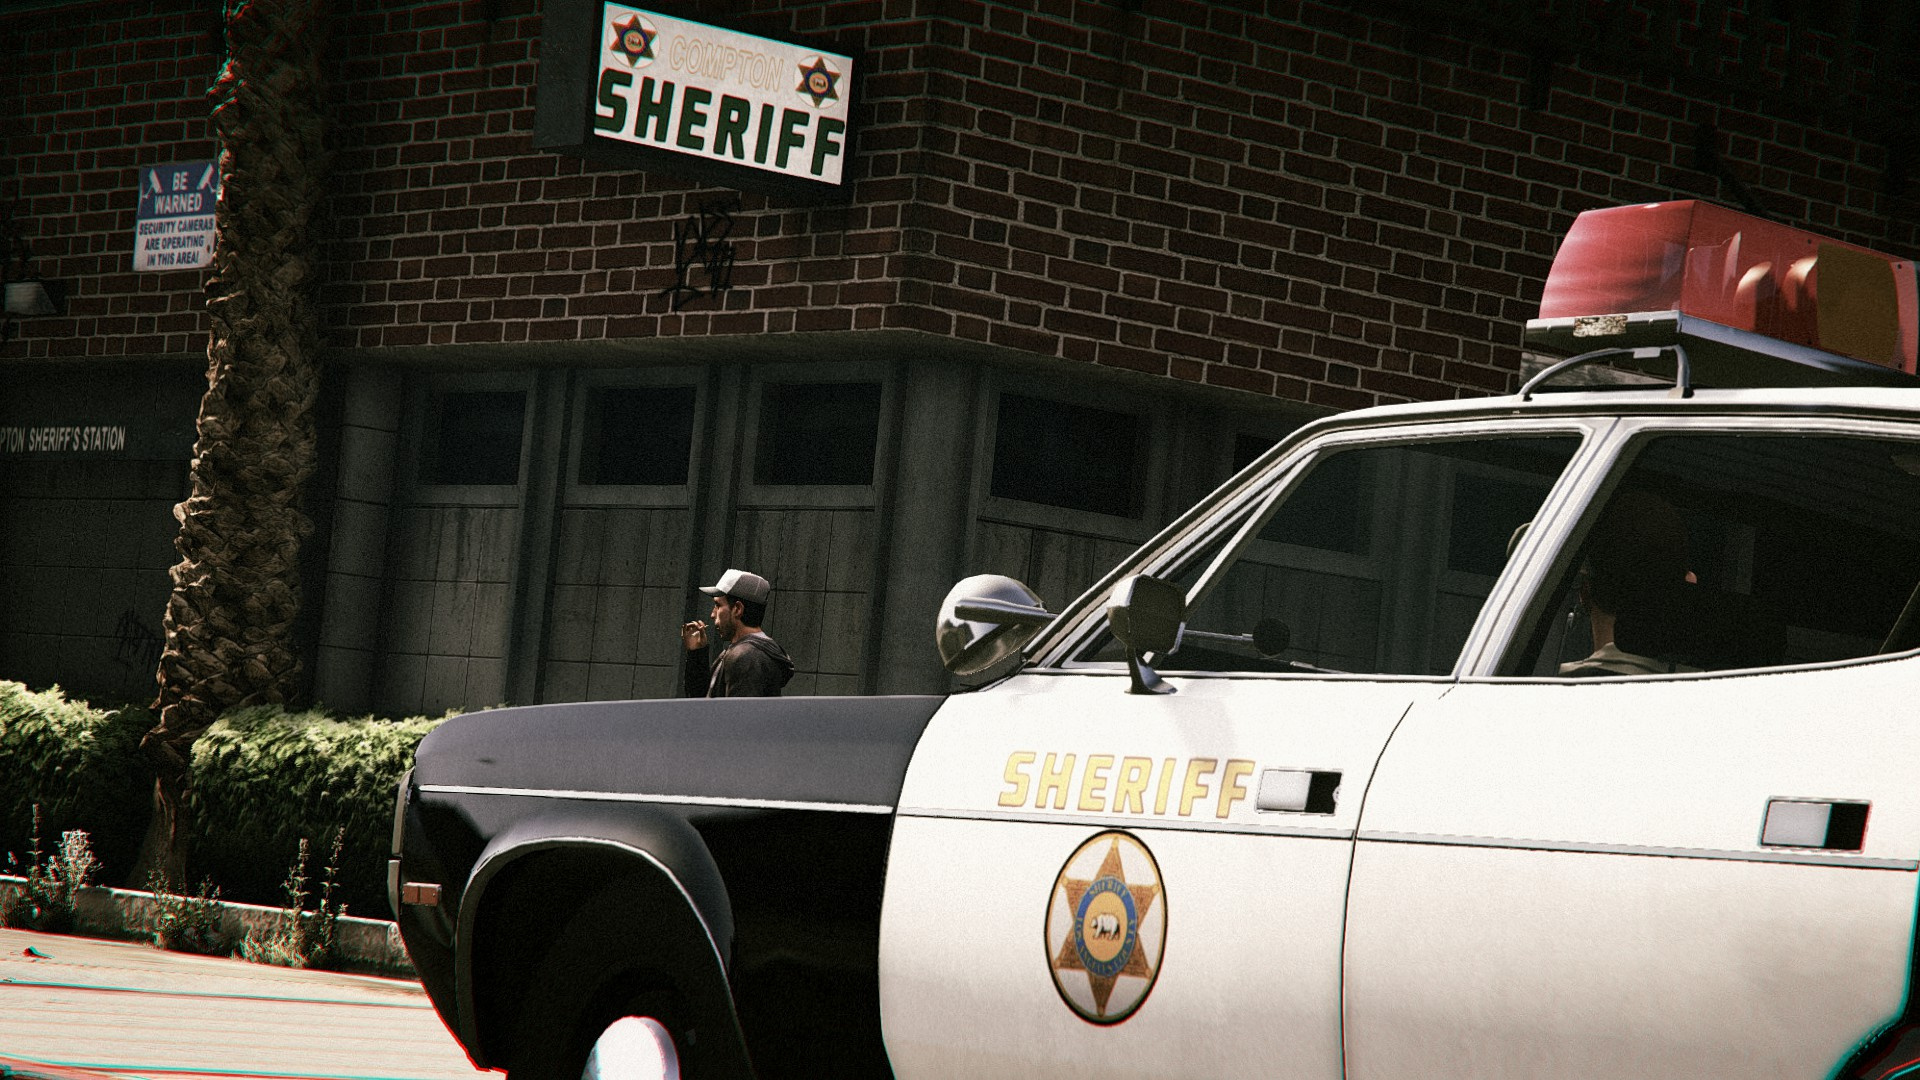 1972 amc matador la co sheriff gta5. Black Bedroom Furniture Sets. Home Design Ideas